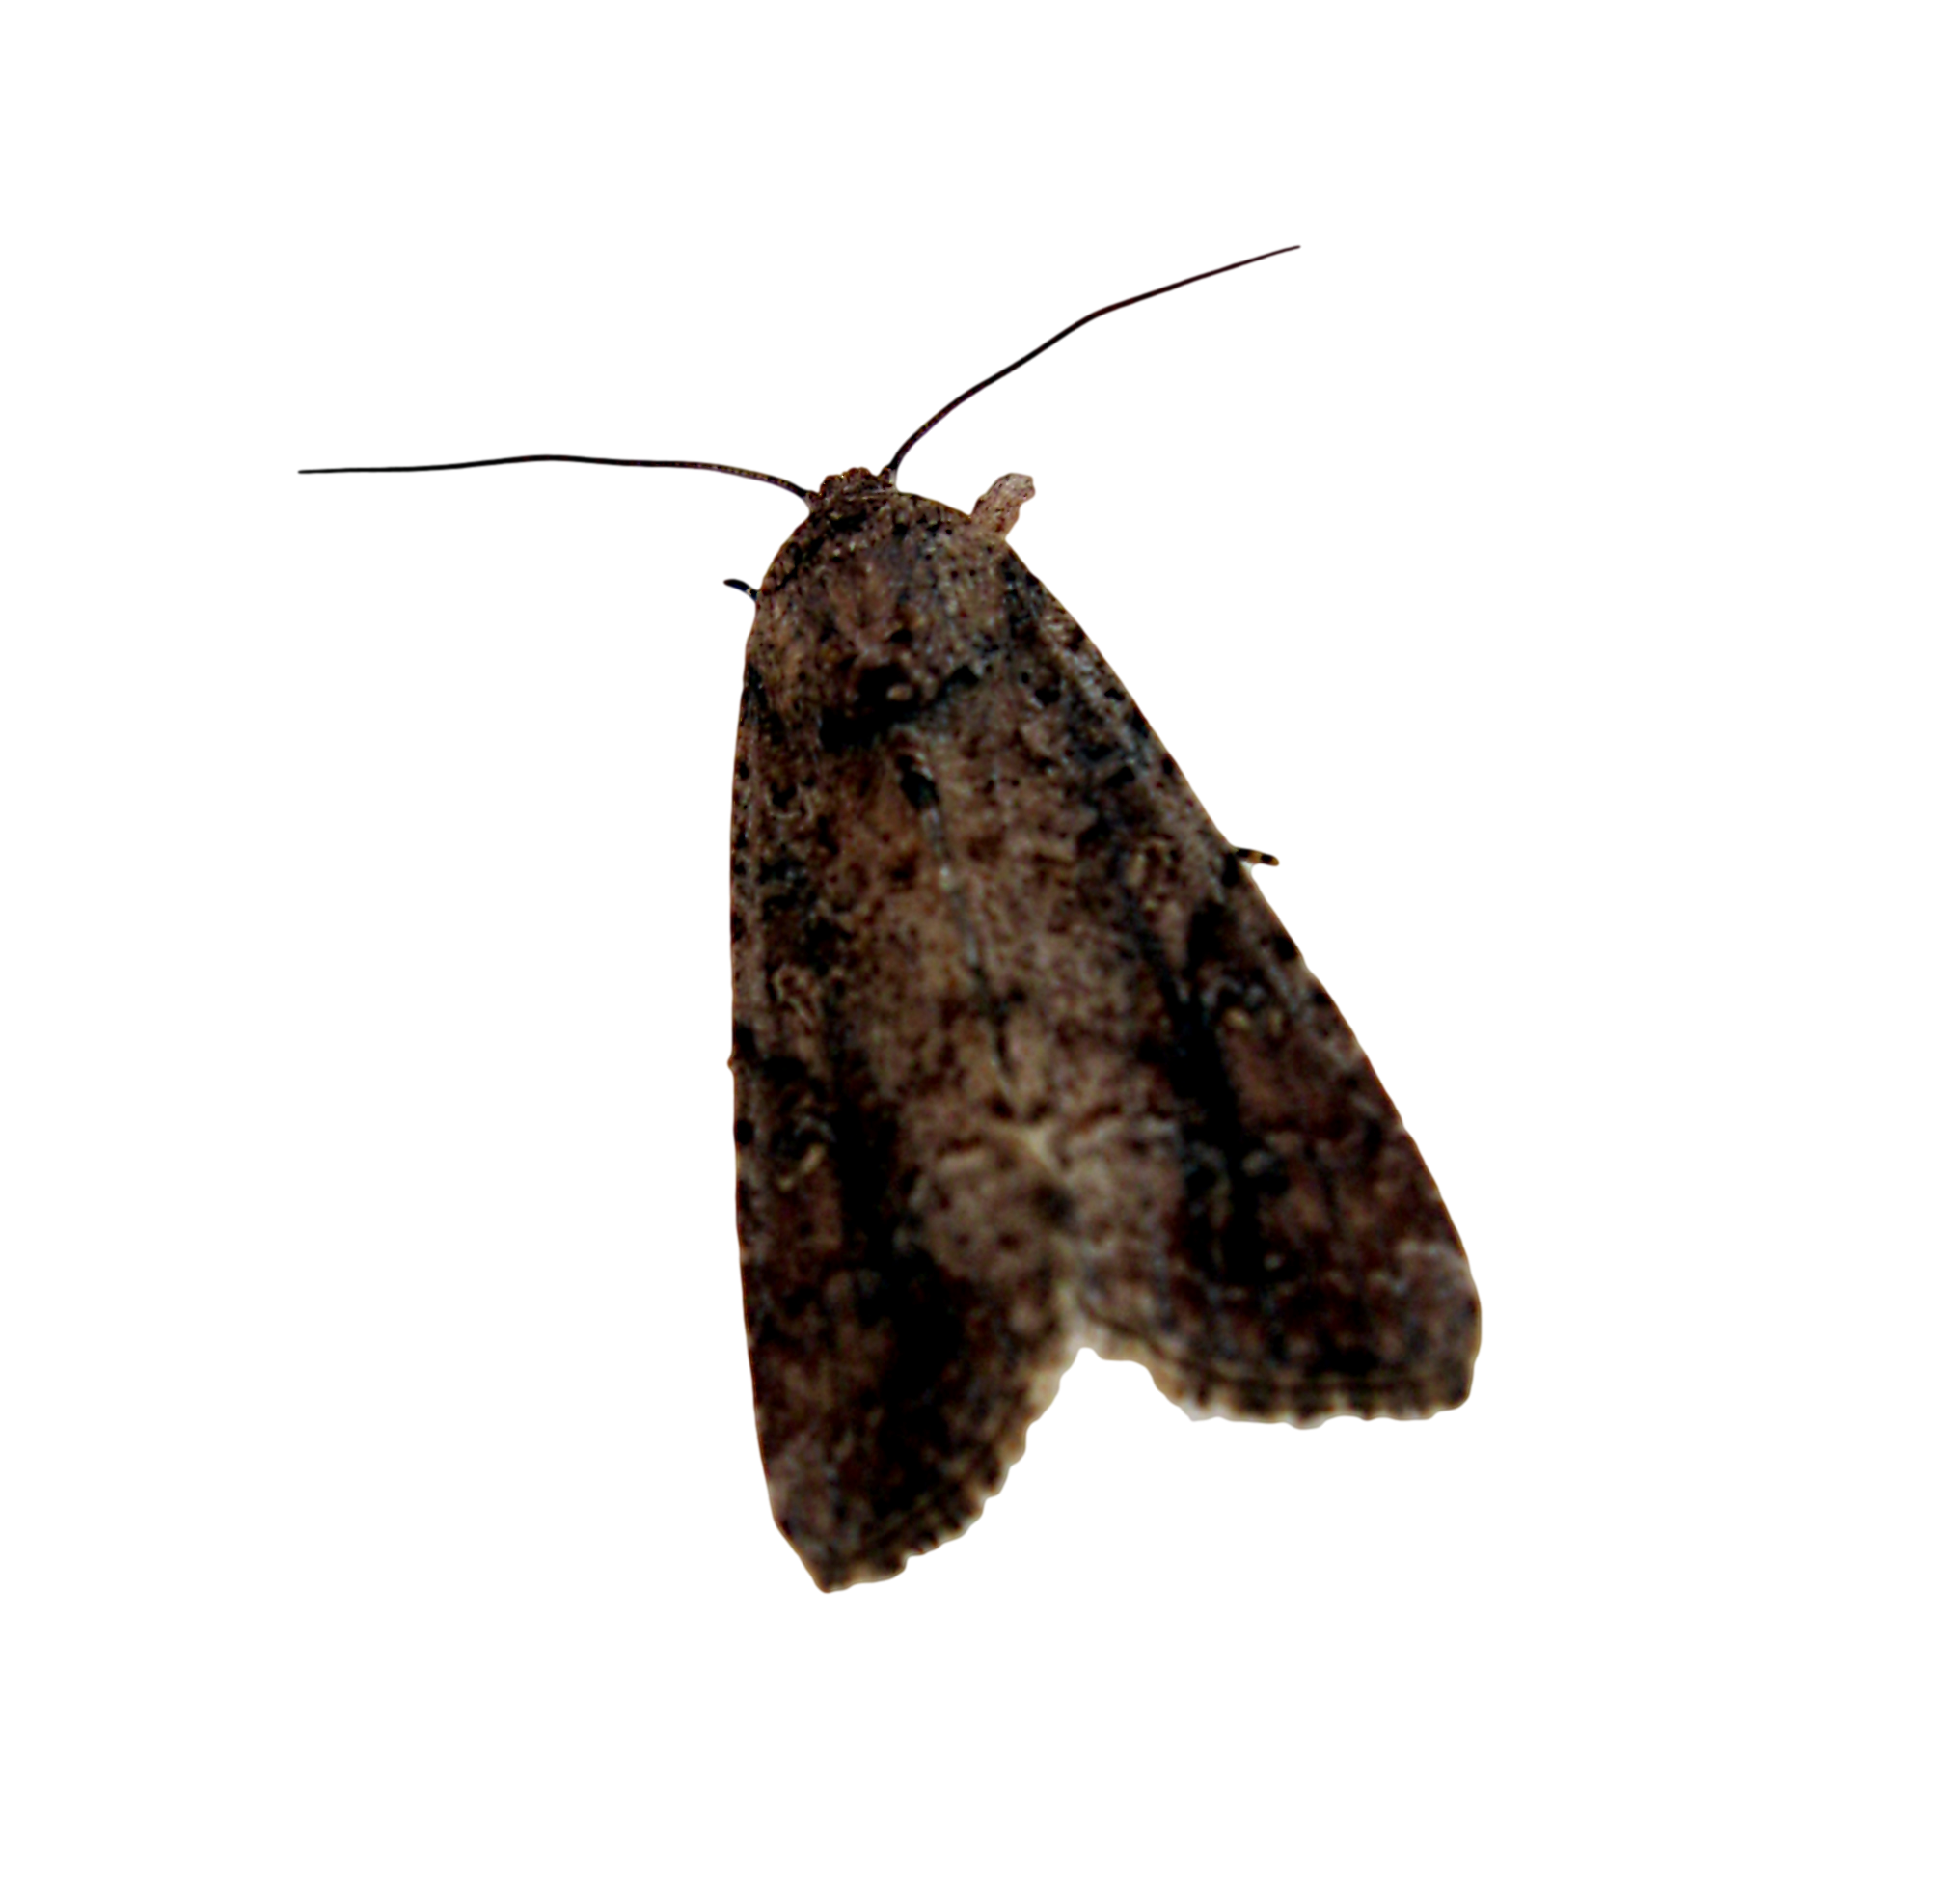 Moth PNG Images Transparent Free Download.